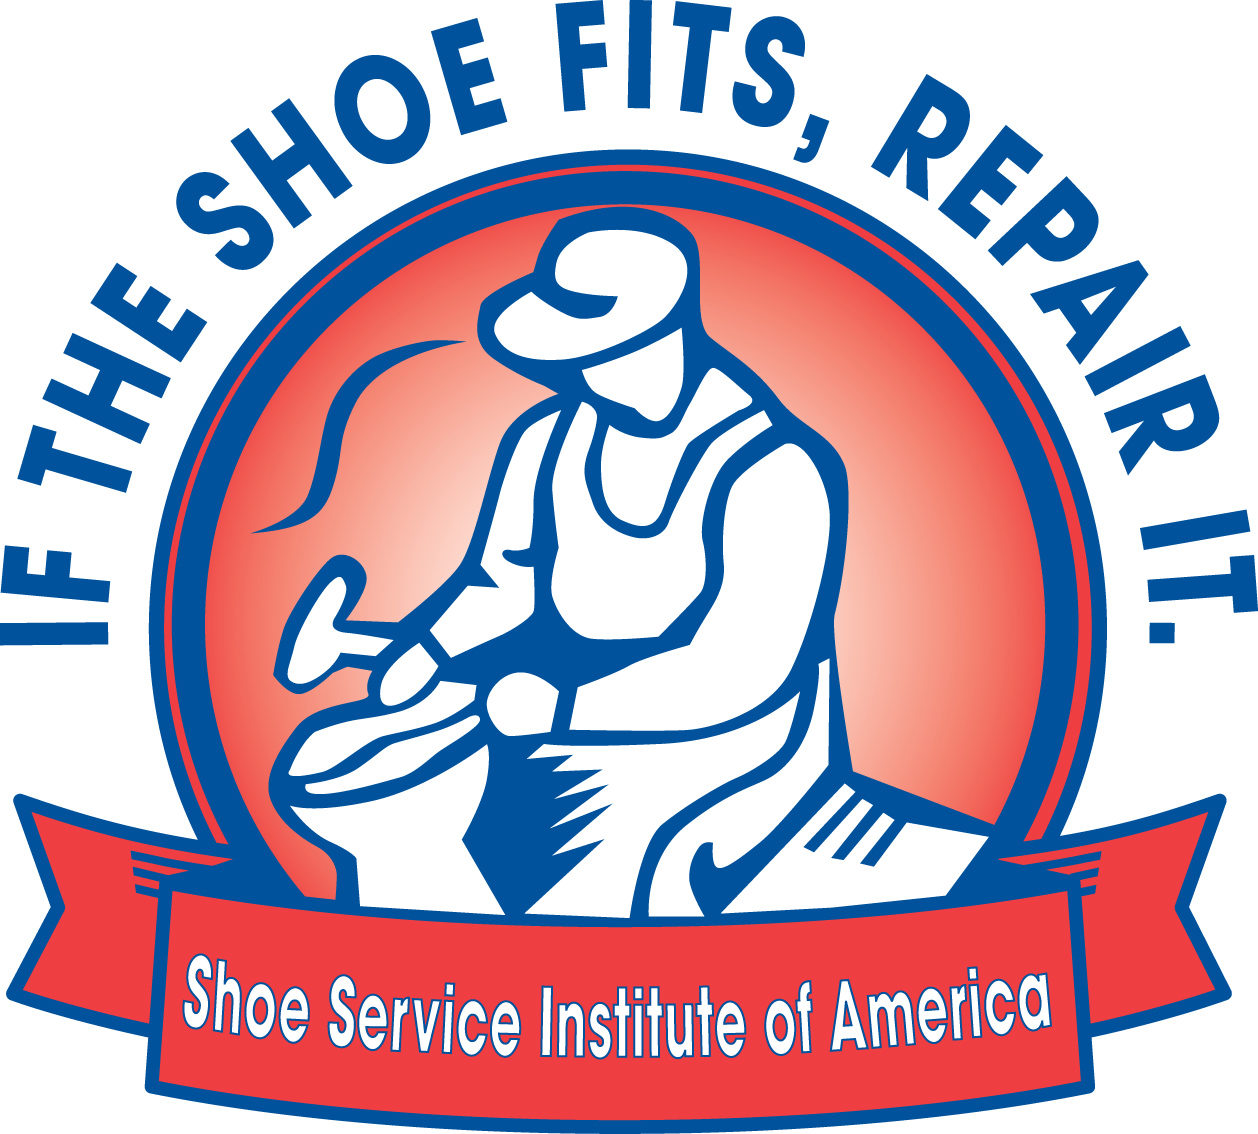 Shoe Service Institute of America